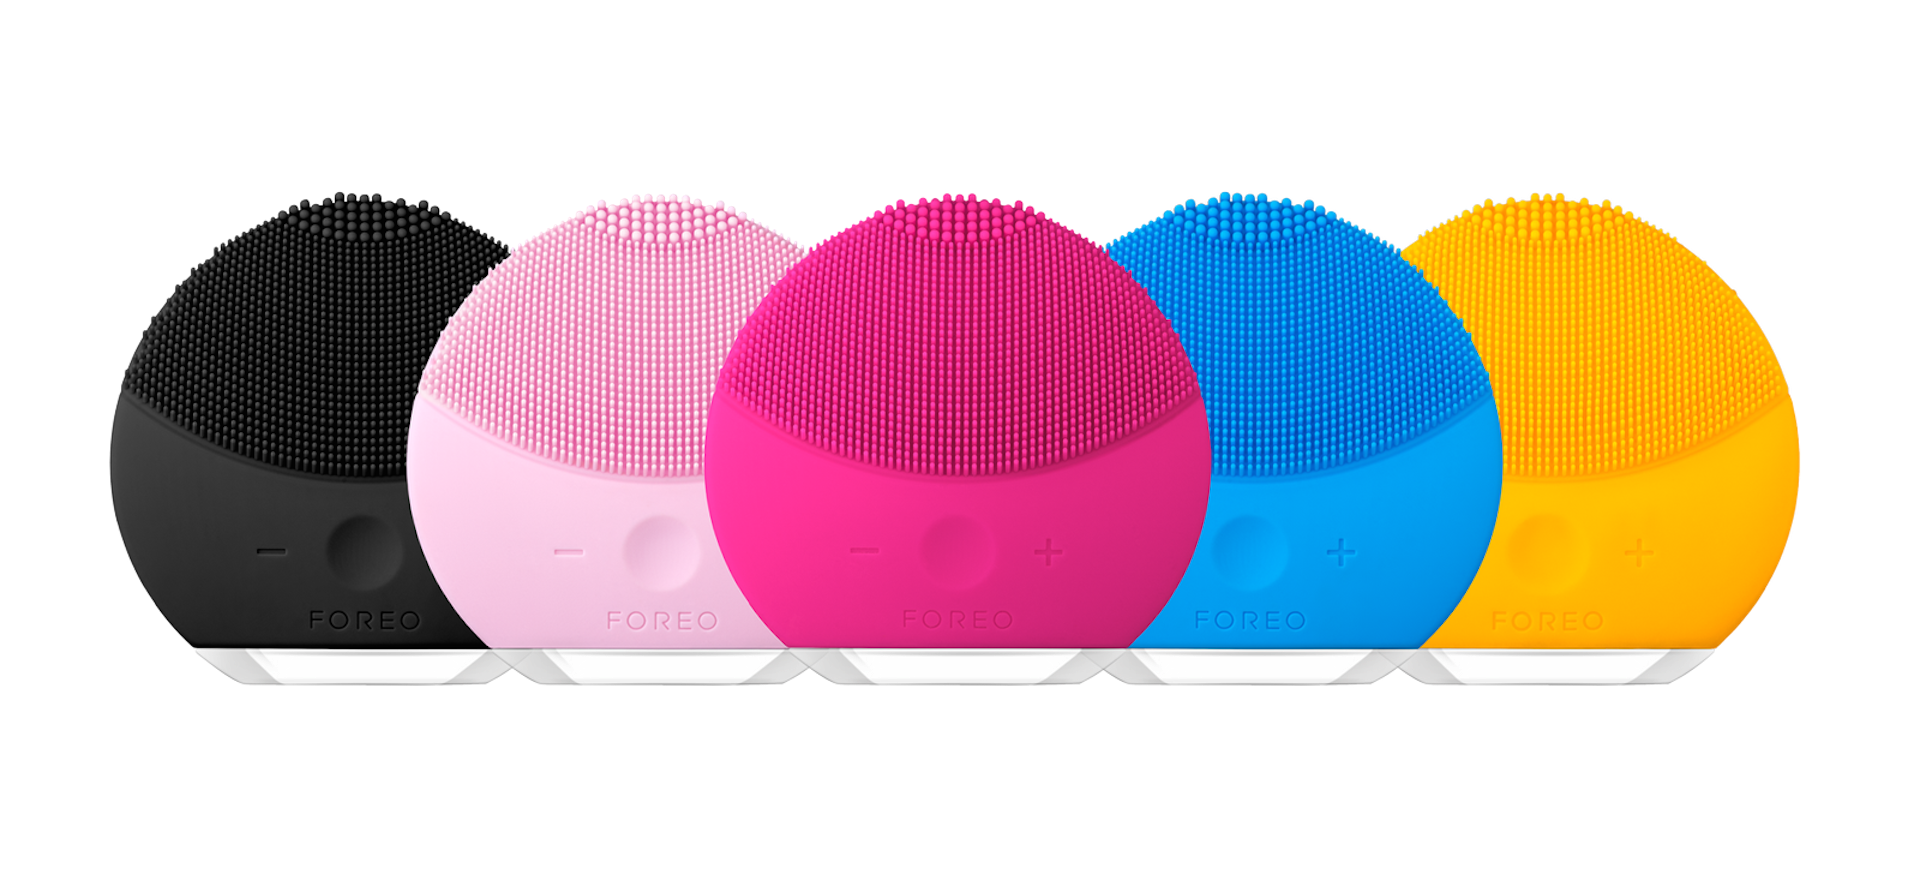 FOREO_LUNA mini 2_group image_preview